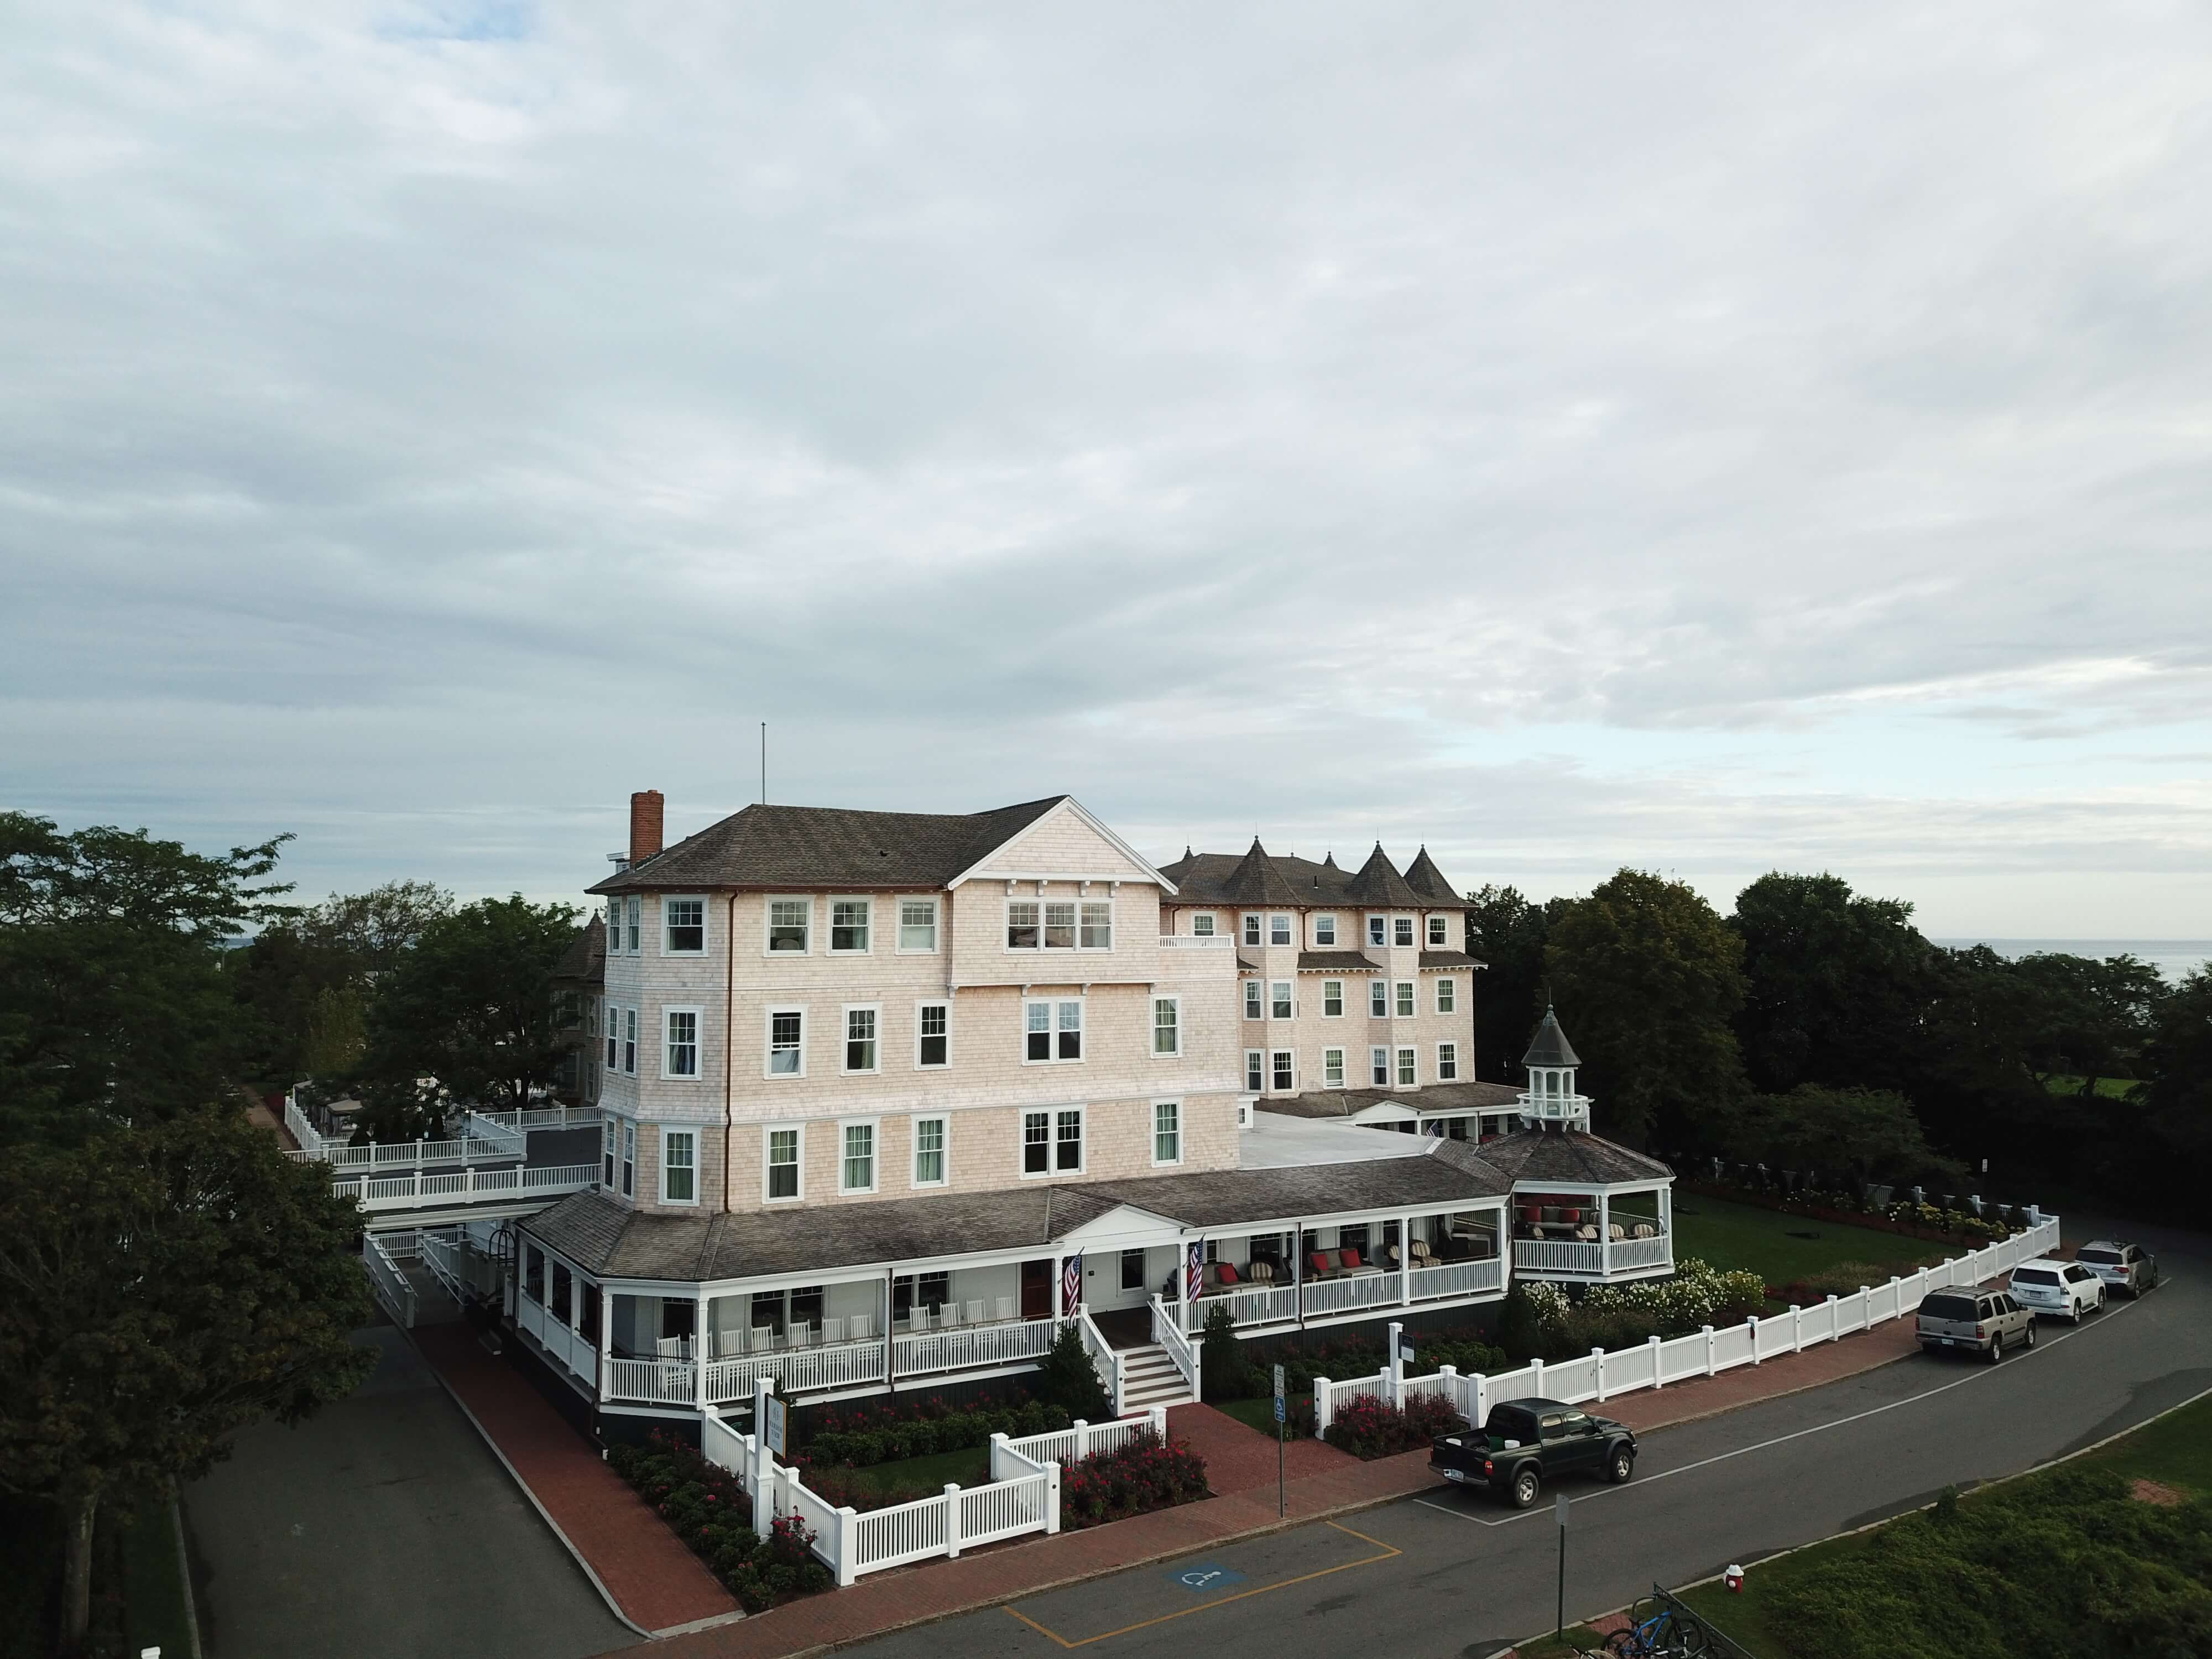 Review of our Stay at the Harbor View Hotel in Martha's Vineyard